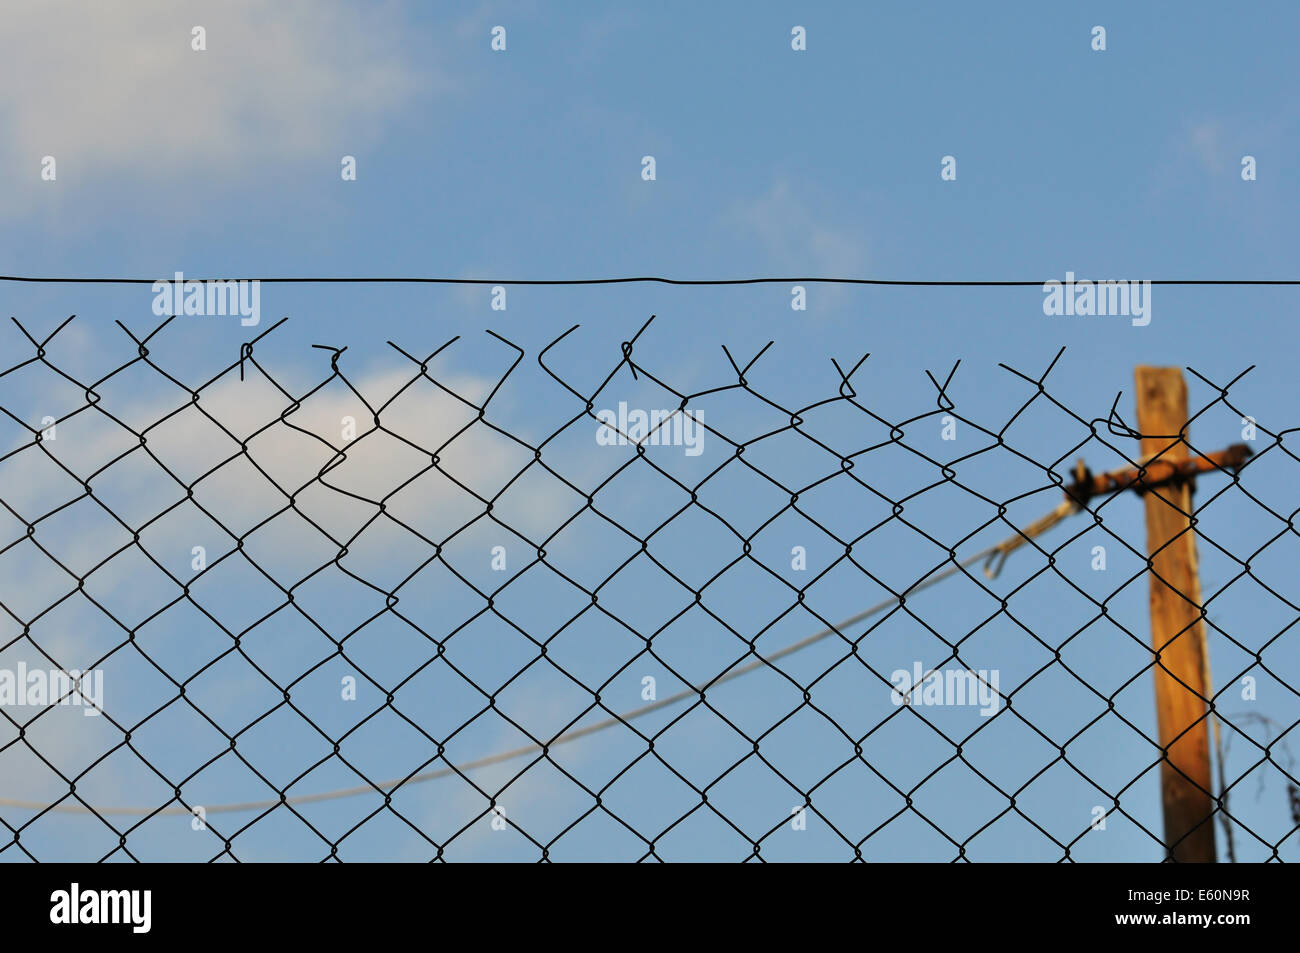 Chain link fence and blue sky urban background. - Stock Image